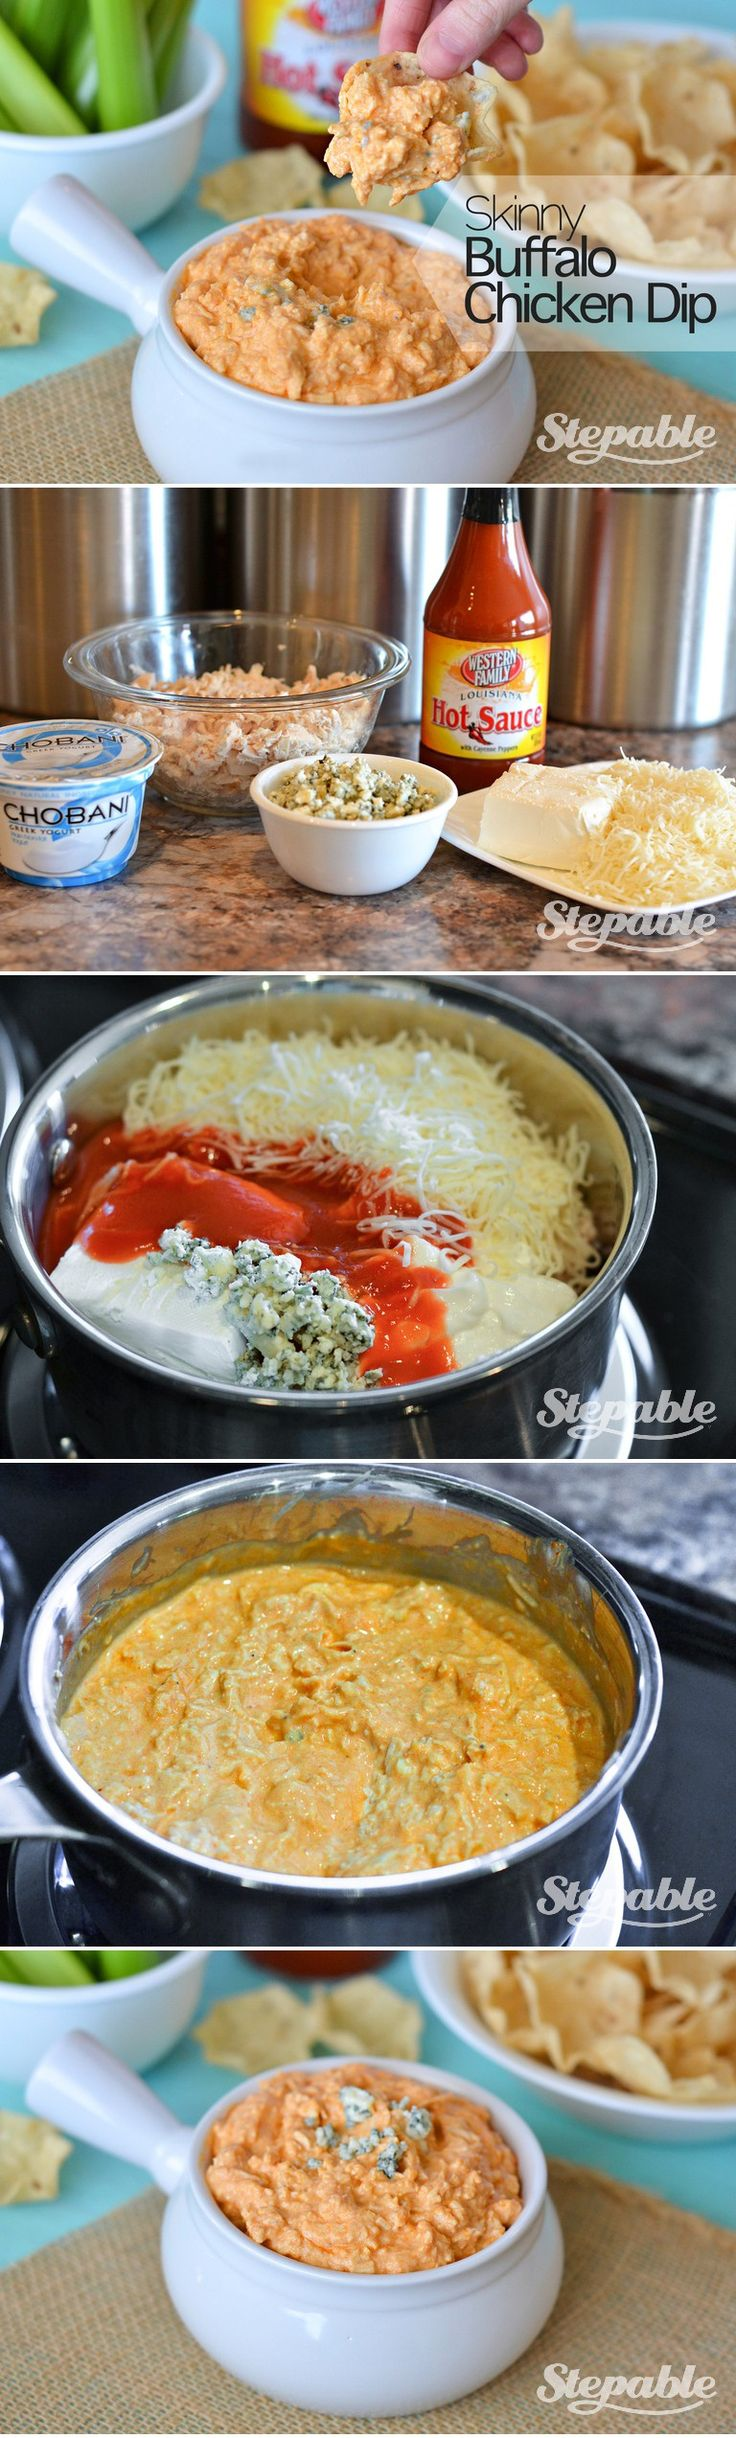 Easy peasy Skinny Buffalo Chicken Dip....made this forever ago...it's ...